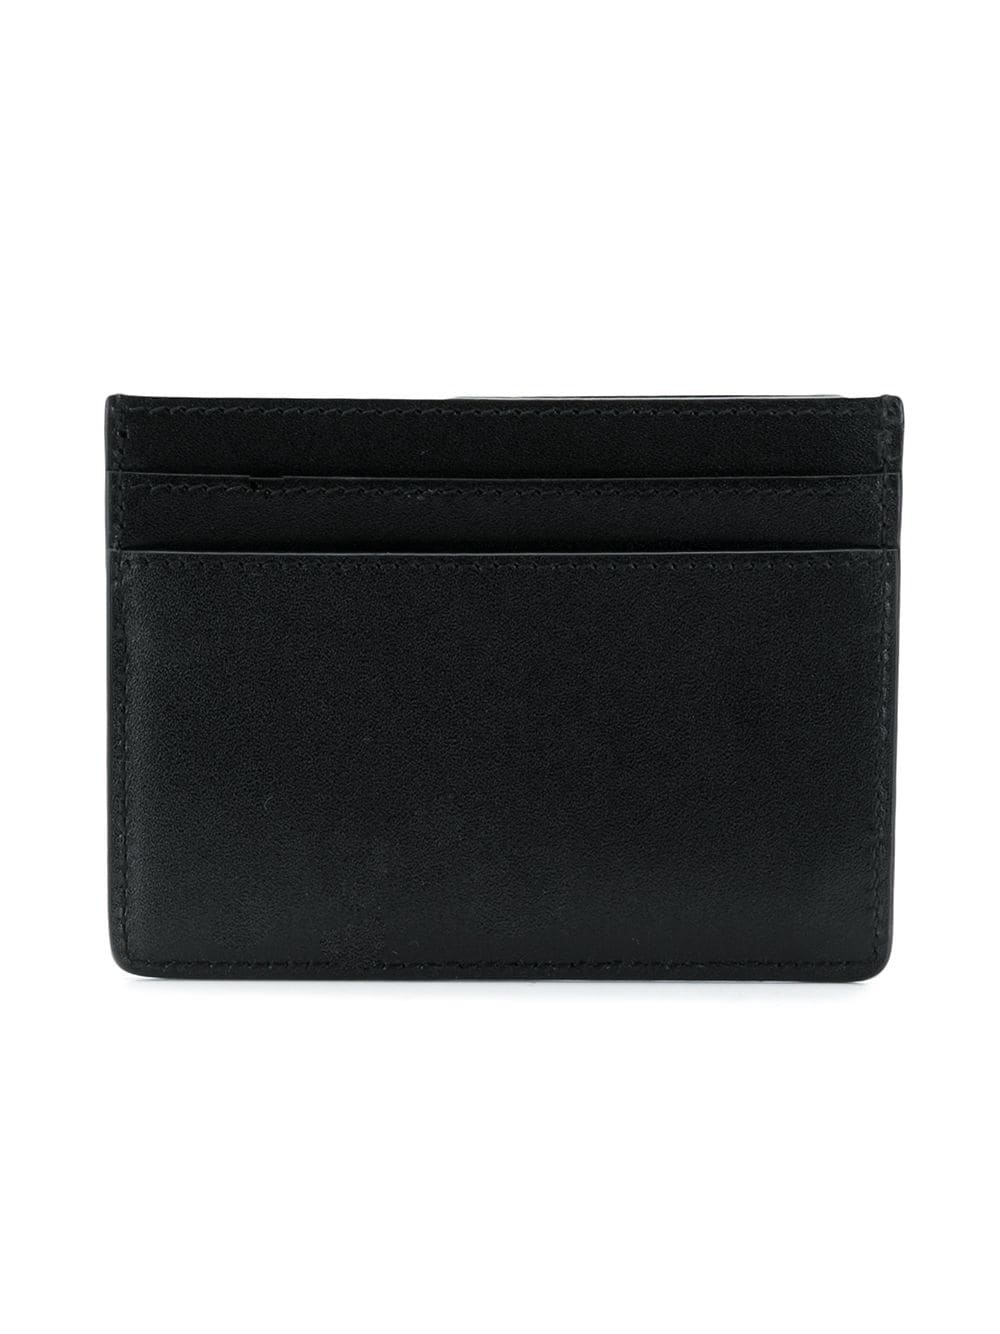 SAINT LAURENT CLASSIC CARD CASE